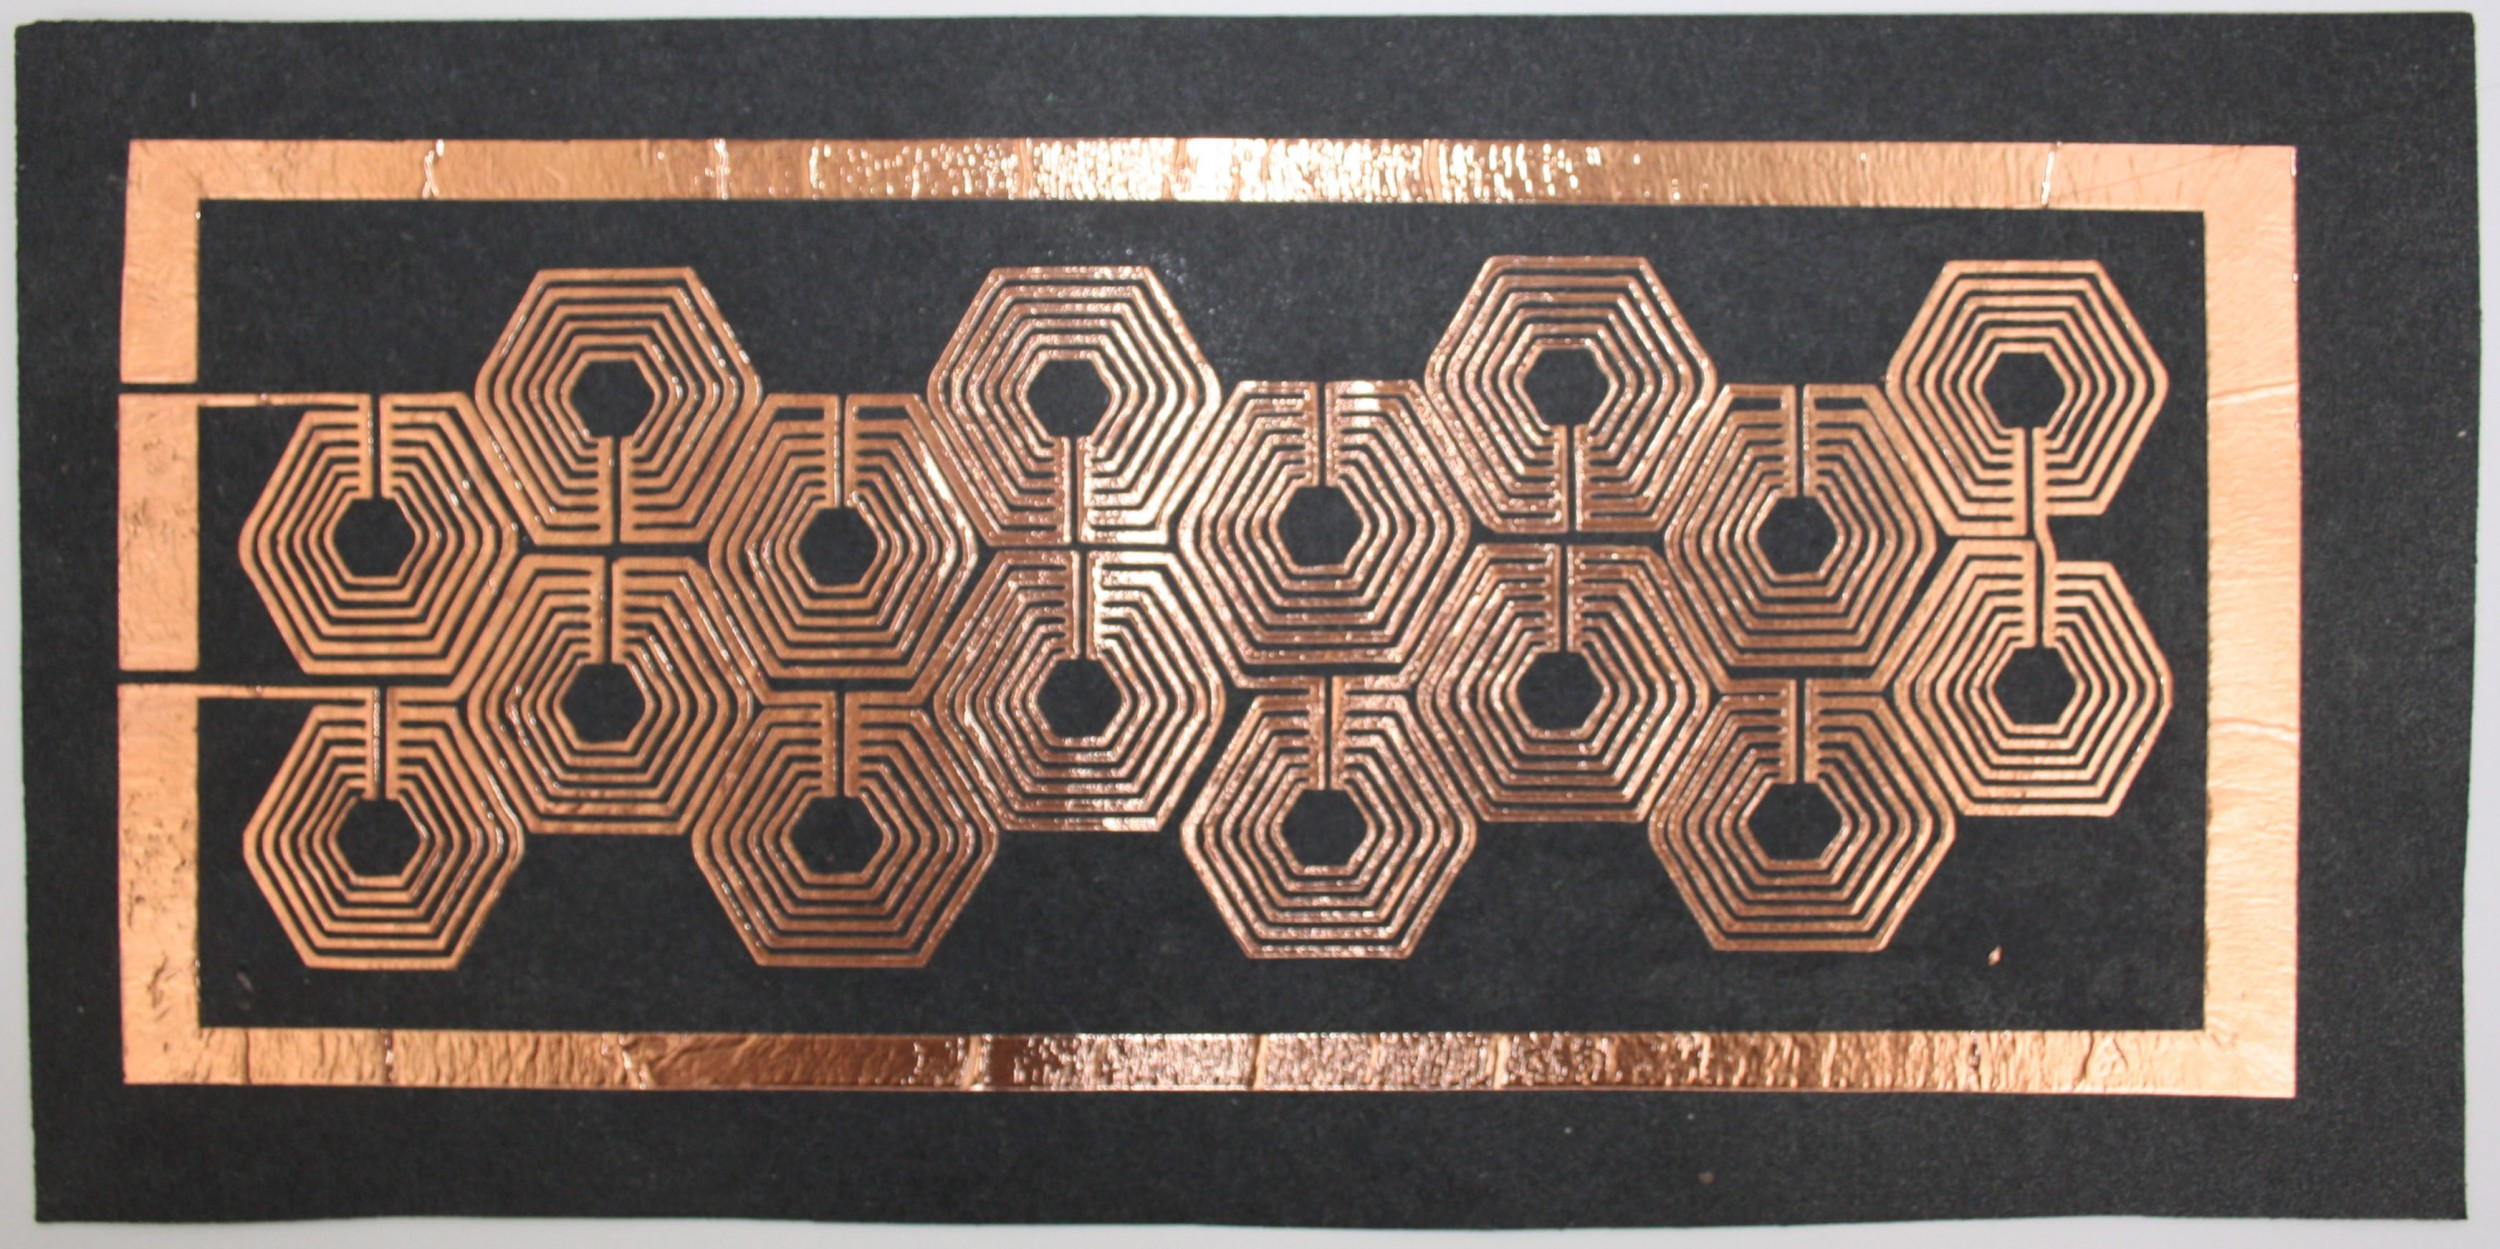 copper foil on paper